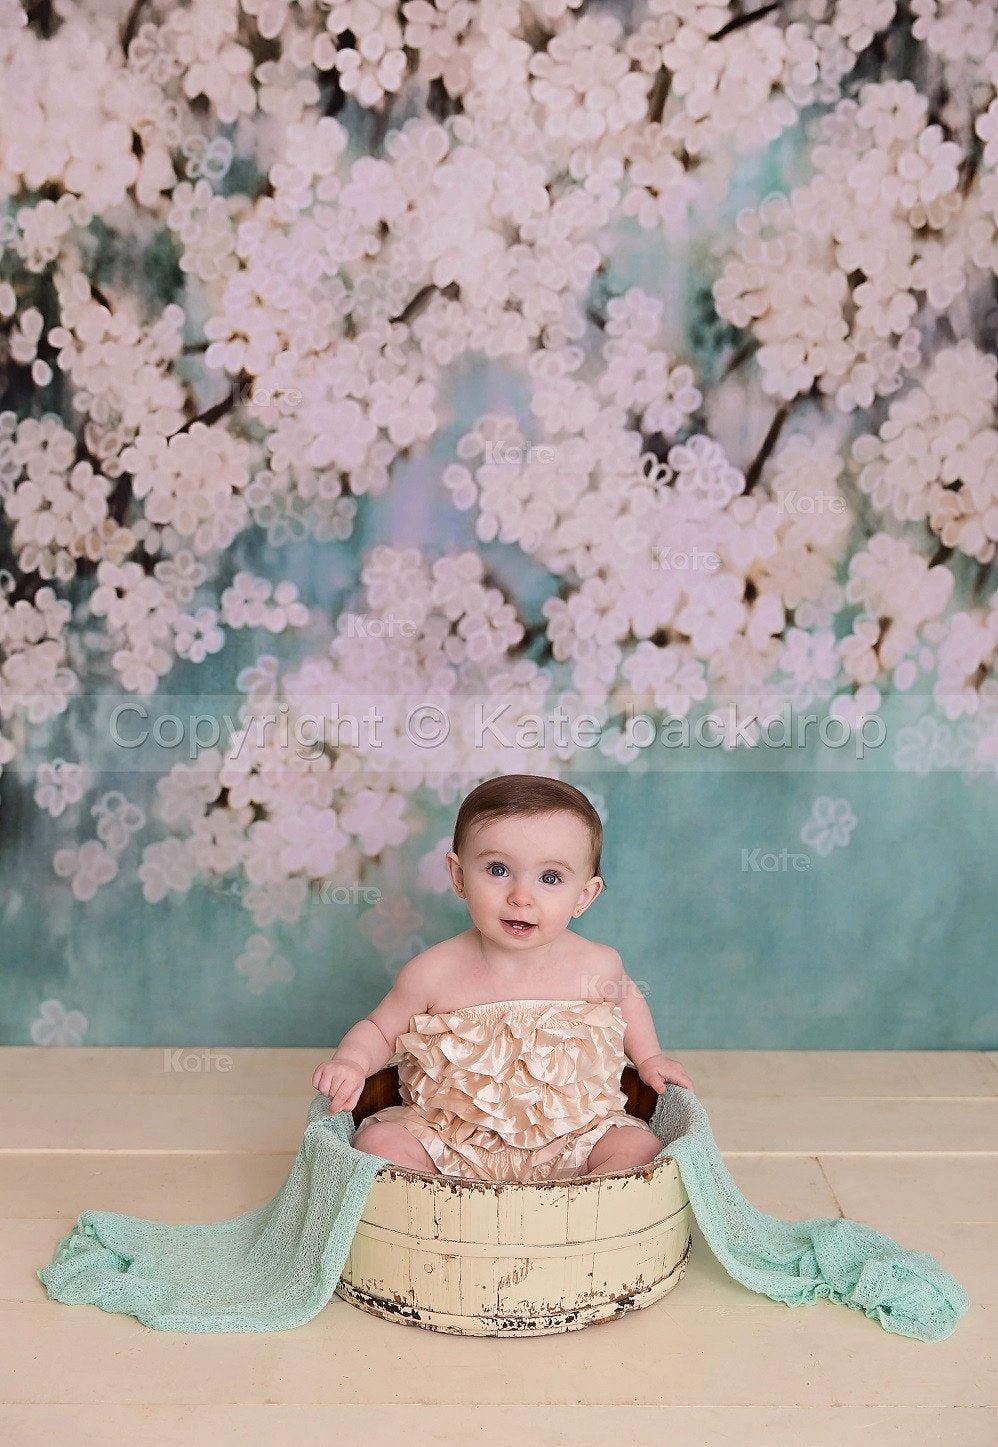 Load image into Gallery viewer, Katebackdrop£ºKate Retro Style Green With White Flowers Backdrops for Children